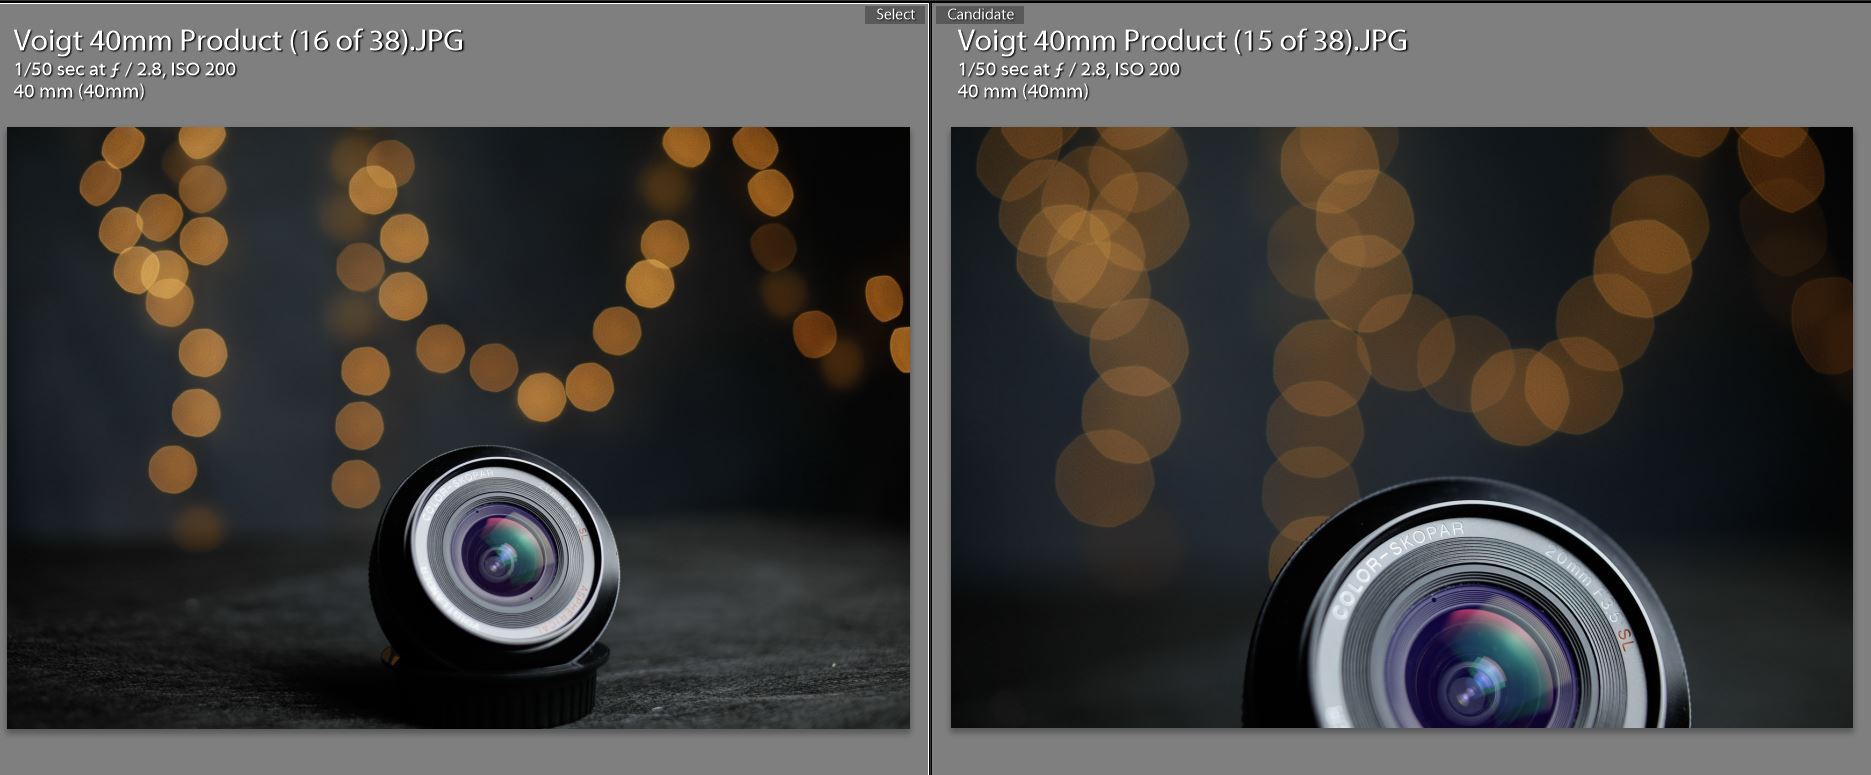 With and Without Close Up Lens